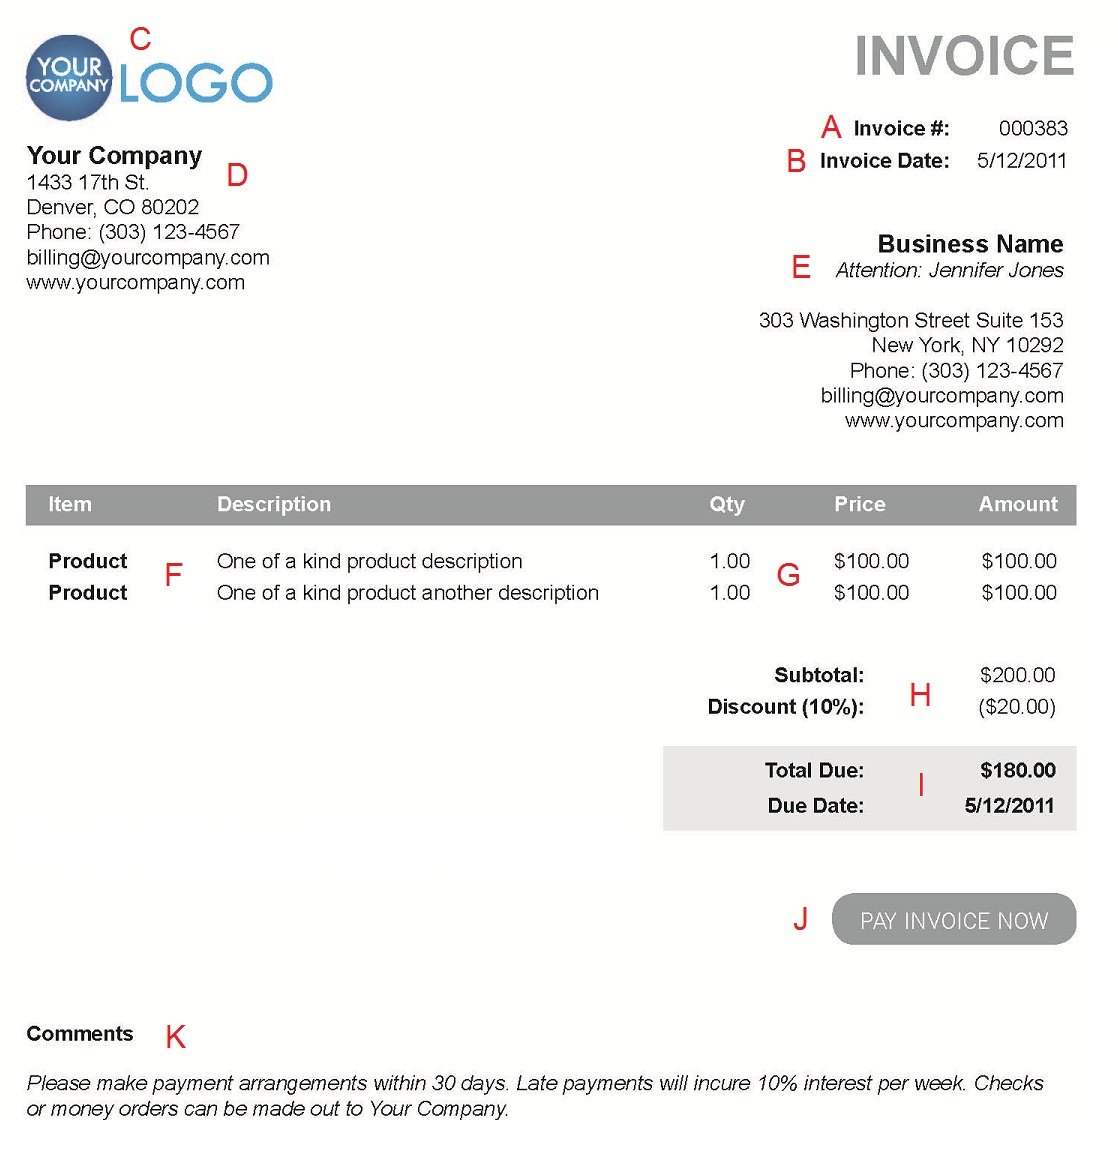 Sexygirlswallpapersus  Wonderful The  Different Sections Of An Electronic Payment Invoice With Inspiring A  With Captivating Wave Invoice Also Square Invoice In Addition Invoice Template Excel And Free Invoice Software As Well As Po Number On Invoice Additionally What Is An Invoice From Paysimplecom With Sexygirlswallpapersus  Inspiring The  Different Sections Of An Electronic Payment Invoice With Captivating A  And Wonderful Wave Invoice Also Square Invoice In Addition Invoice Template Excel From Paysimplecom